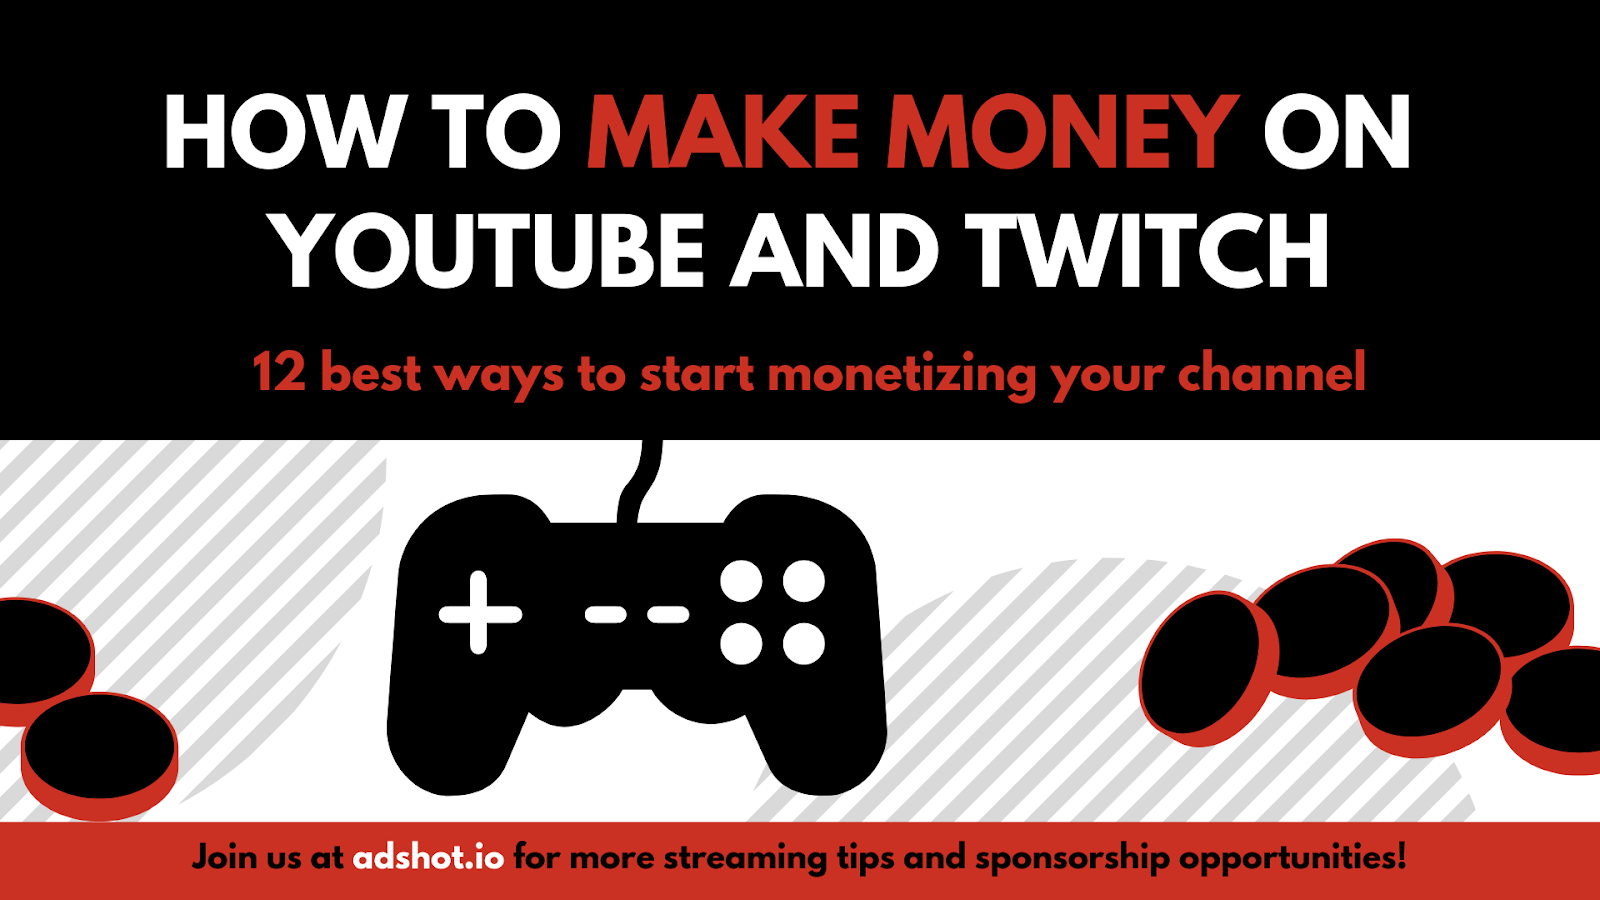 How to make money on YouTube and Twitch: 12 best ways to